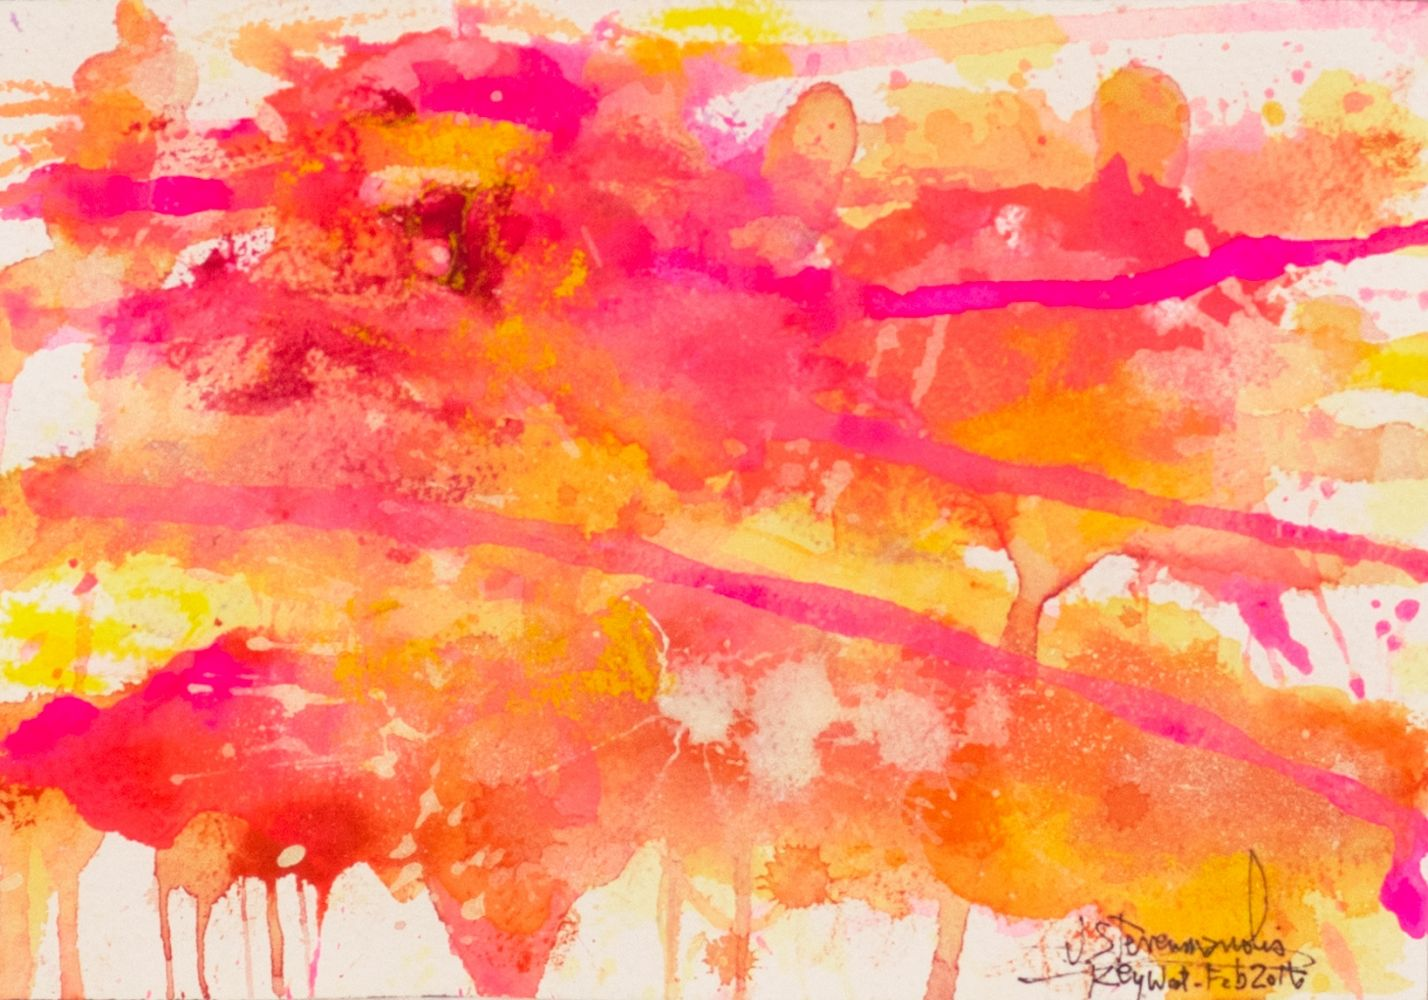 J. Steven Manolis,  JSM, Flamingo 1832-2016(Key West) 7.10.02, watercolor-gouache, 7 x 10 inches, Abstract expressionism paintings for sale at Manolis Projects Art Gallery, Miami, Fl